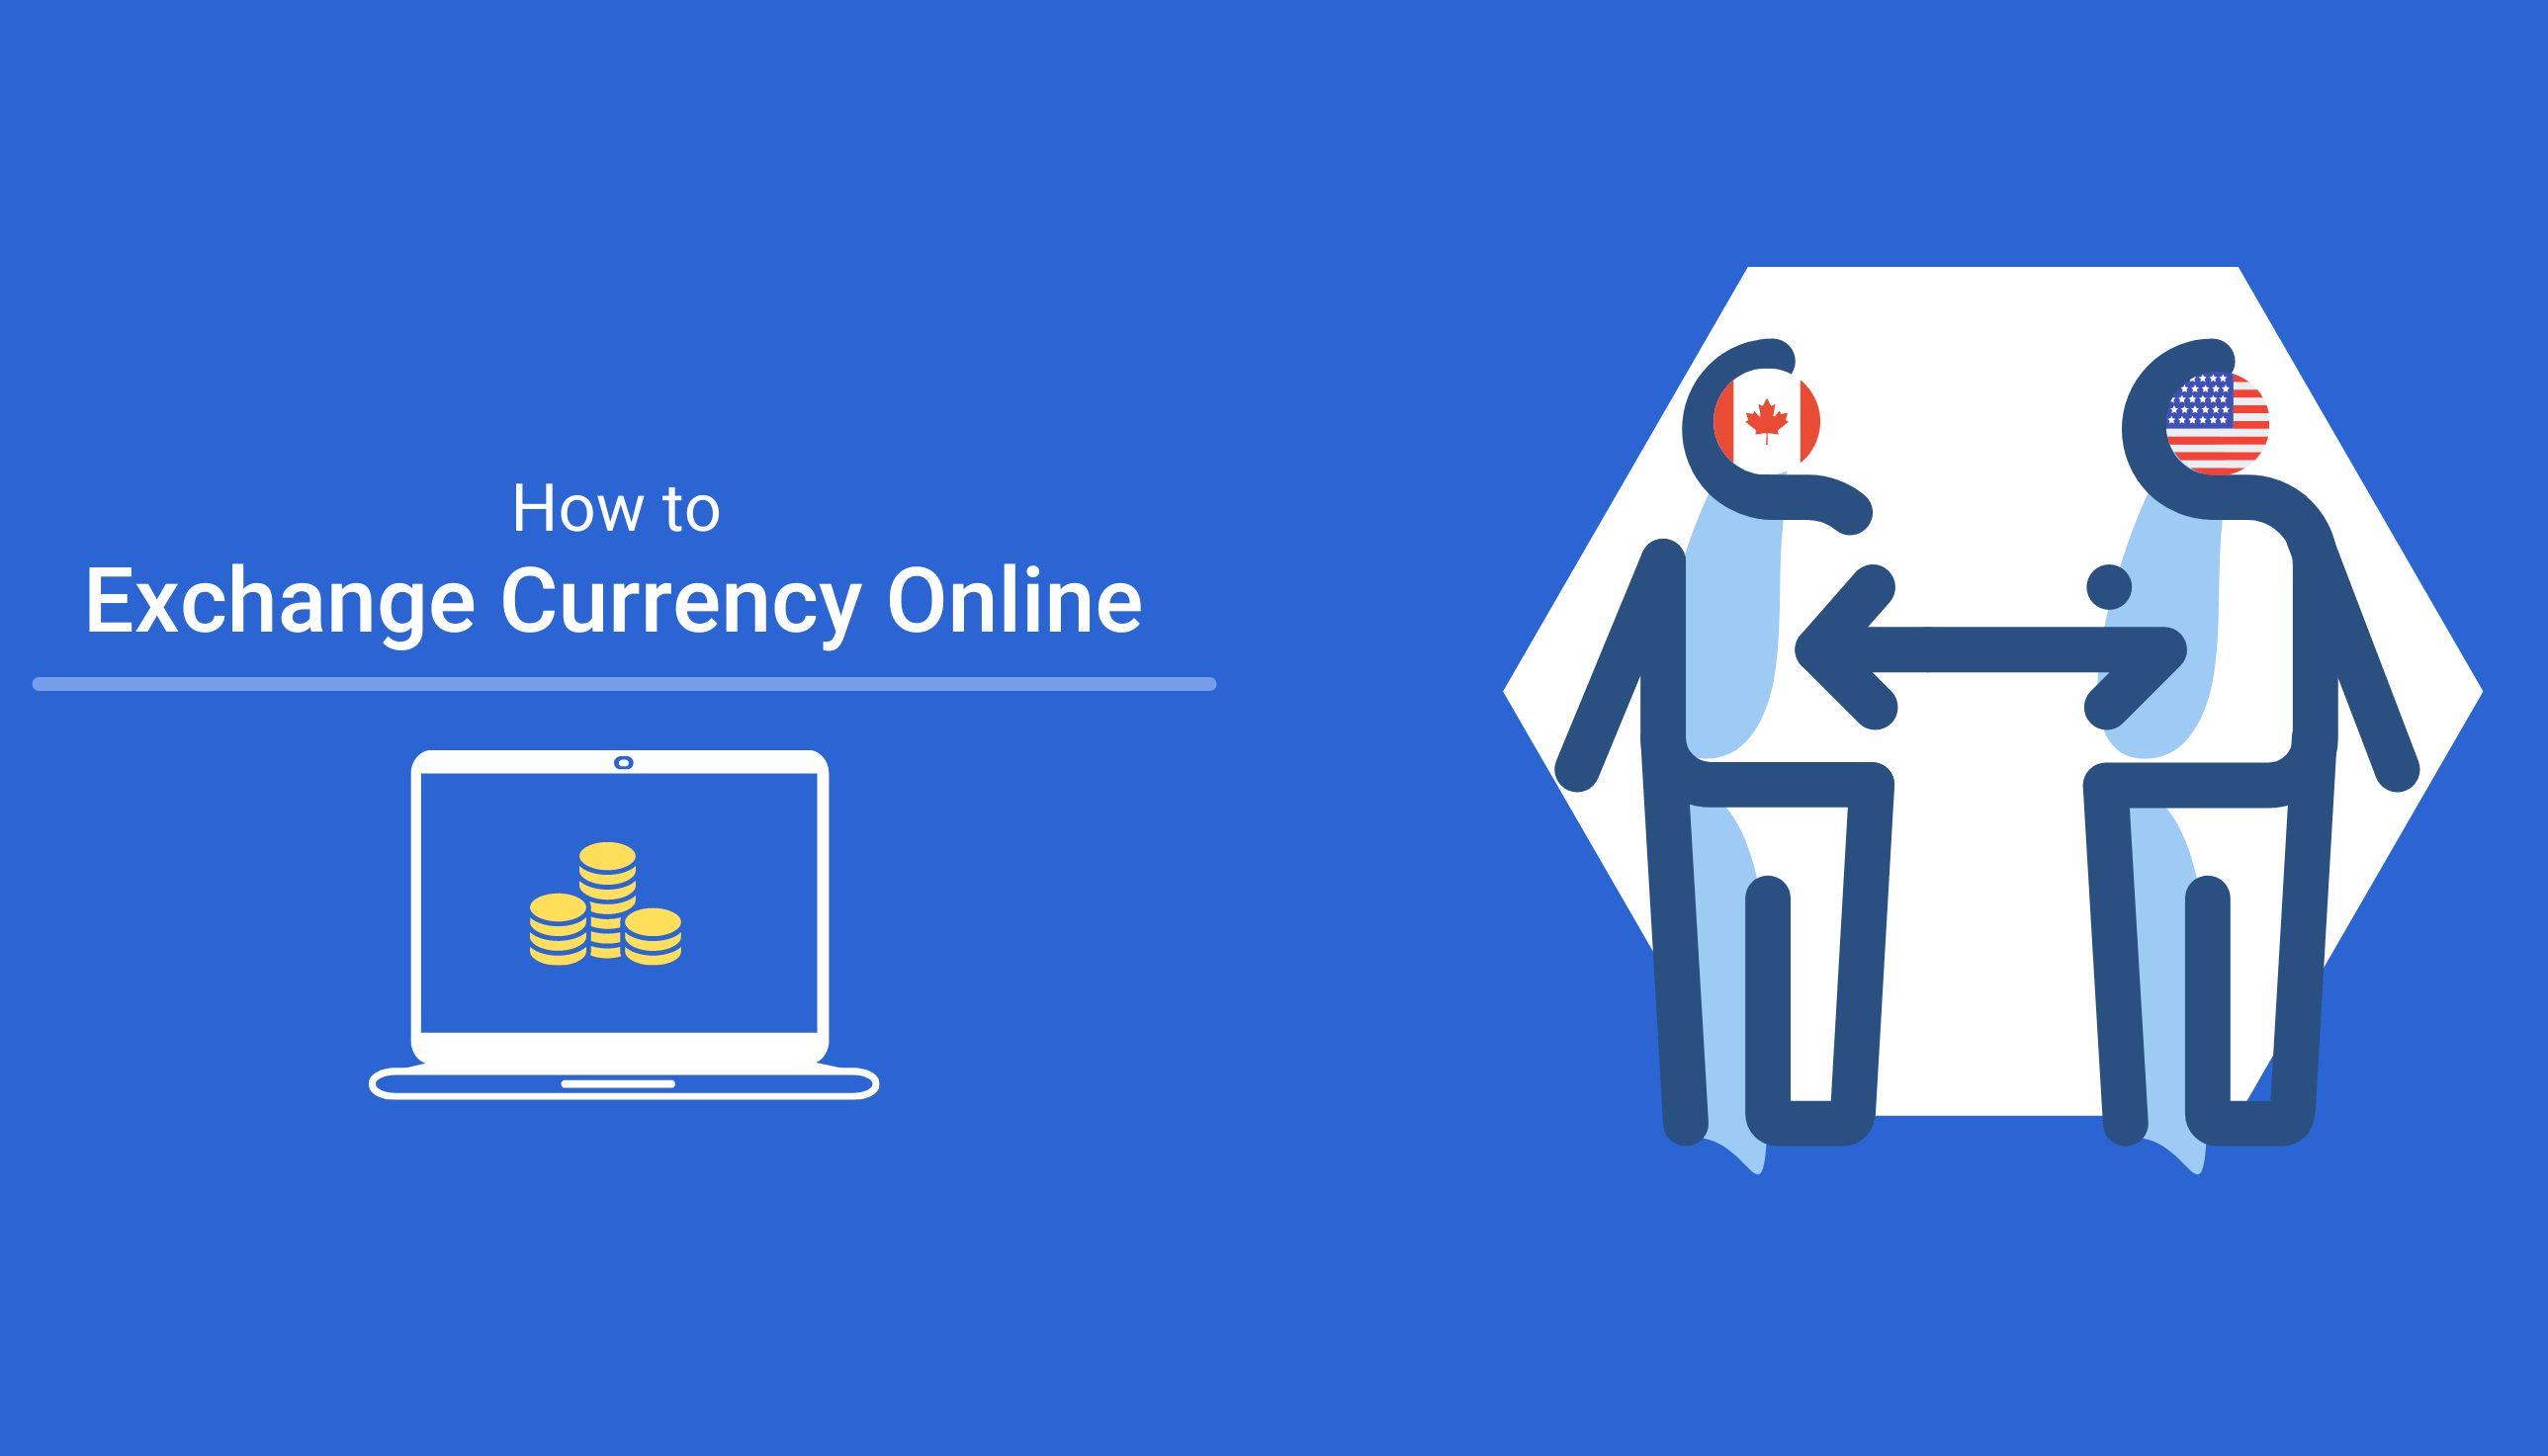 How to Exchange Currency Online